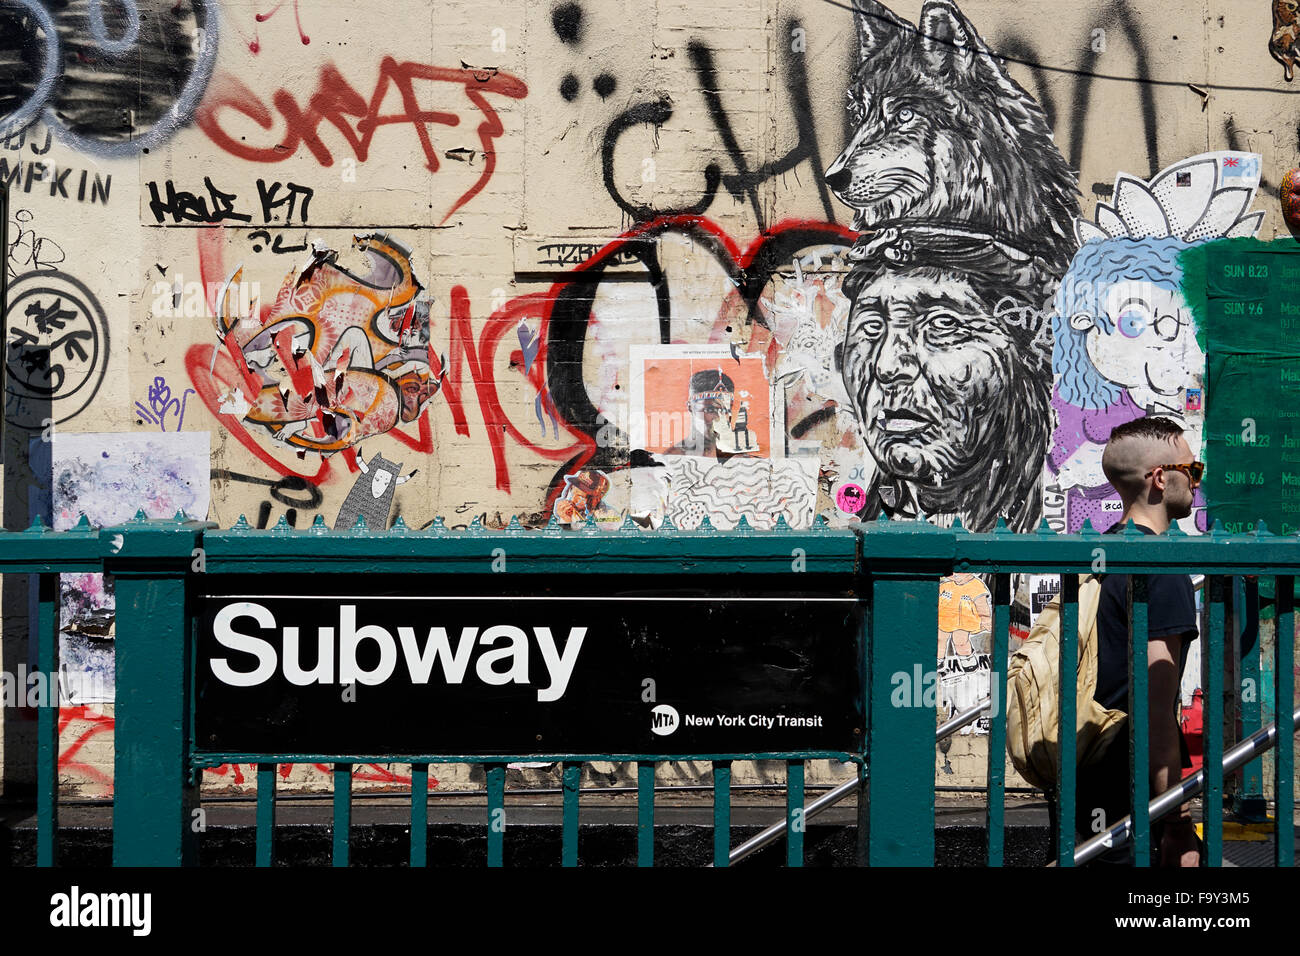 Graffiti wall in queens ny - New York City Subway Station With Graffiti In The Background And Subway Rider Walking Up The